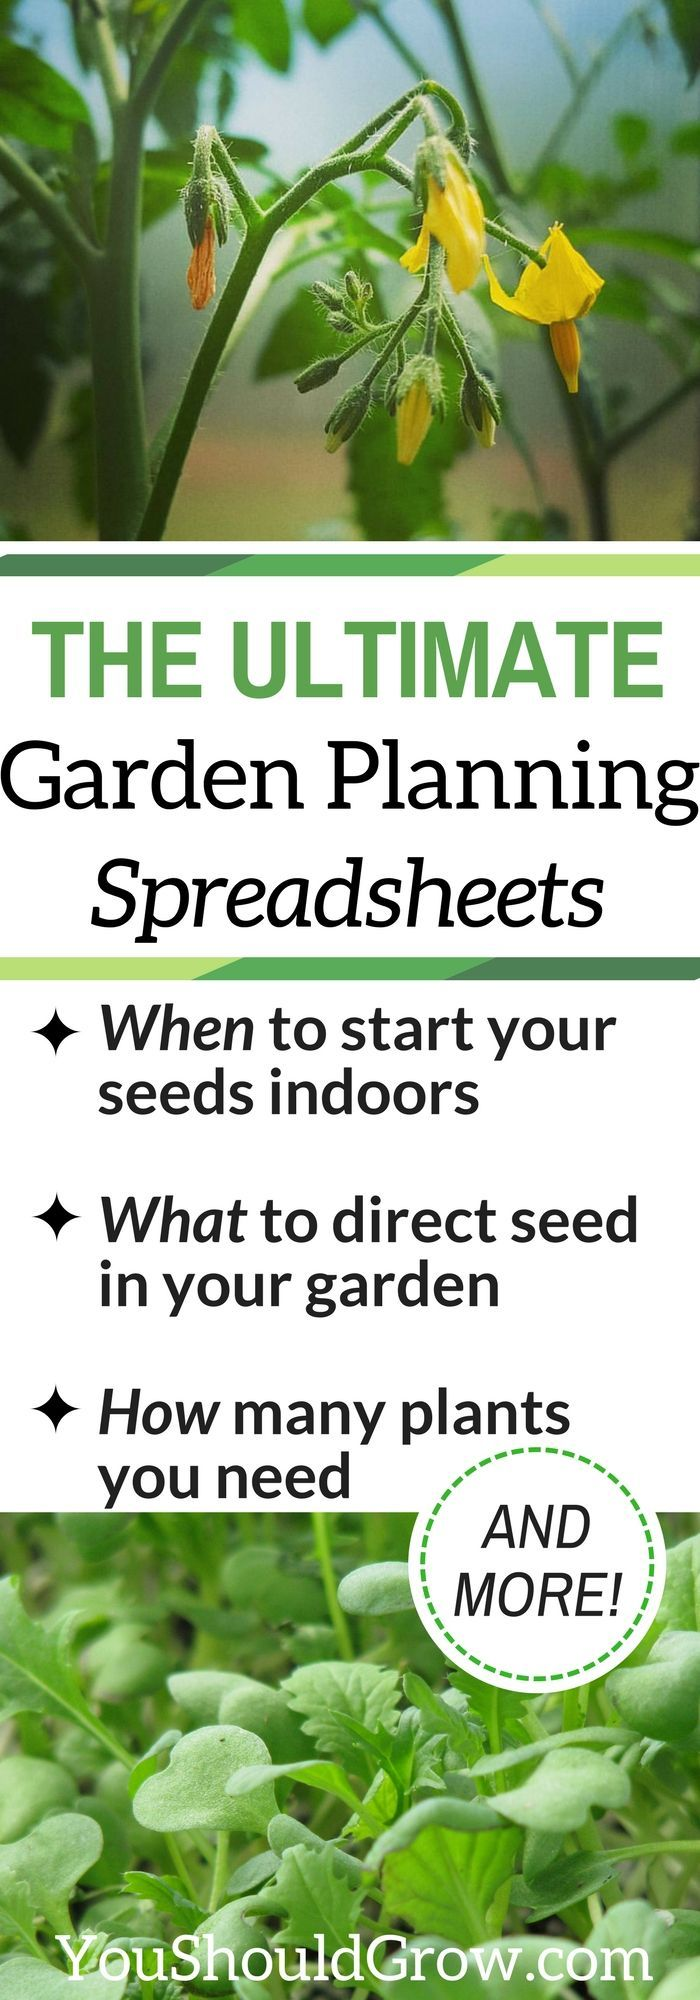 Try These Easy To Use Vegetable Garden Planning Spreadsheets | You Should Grow